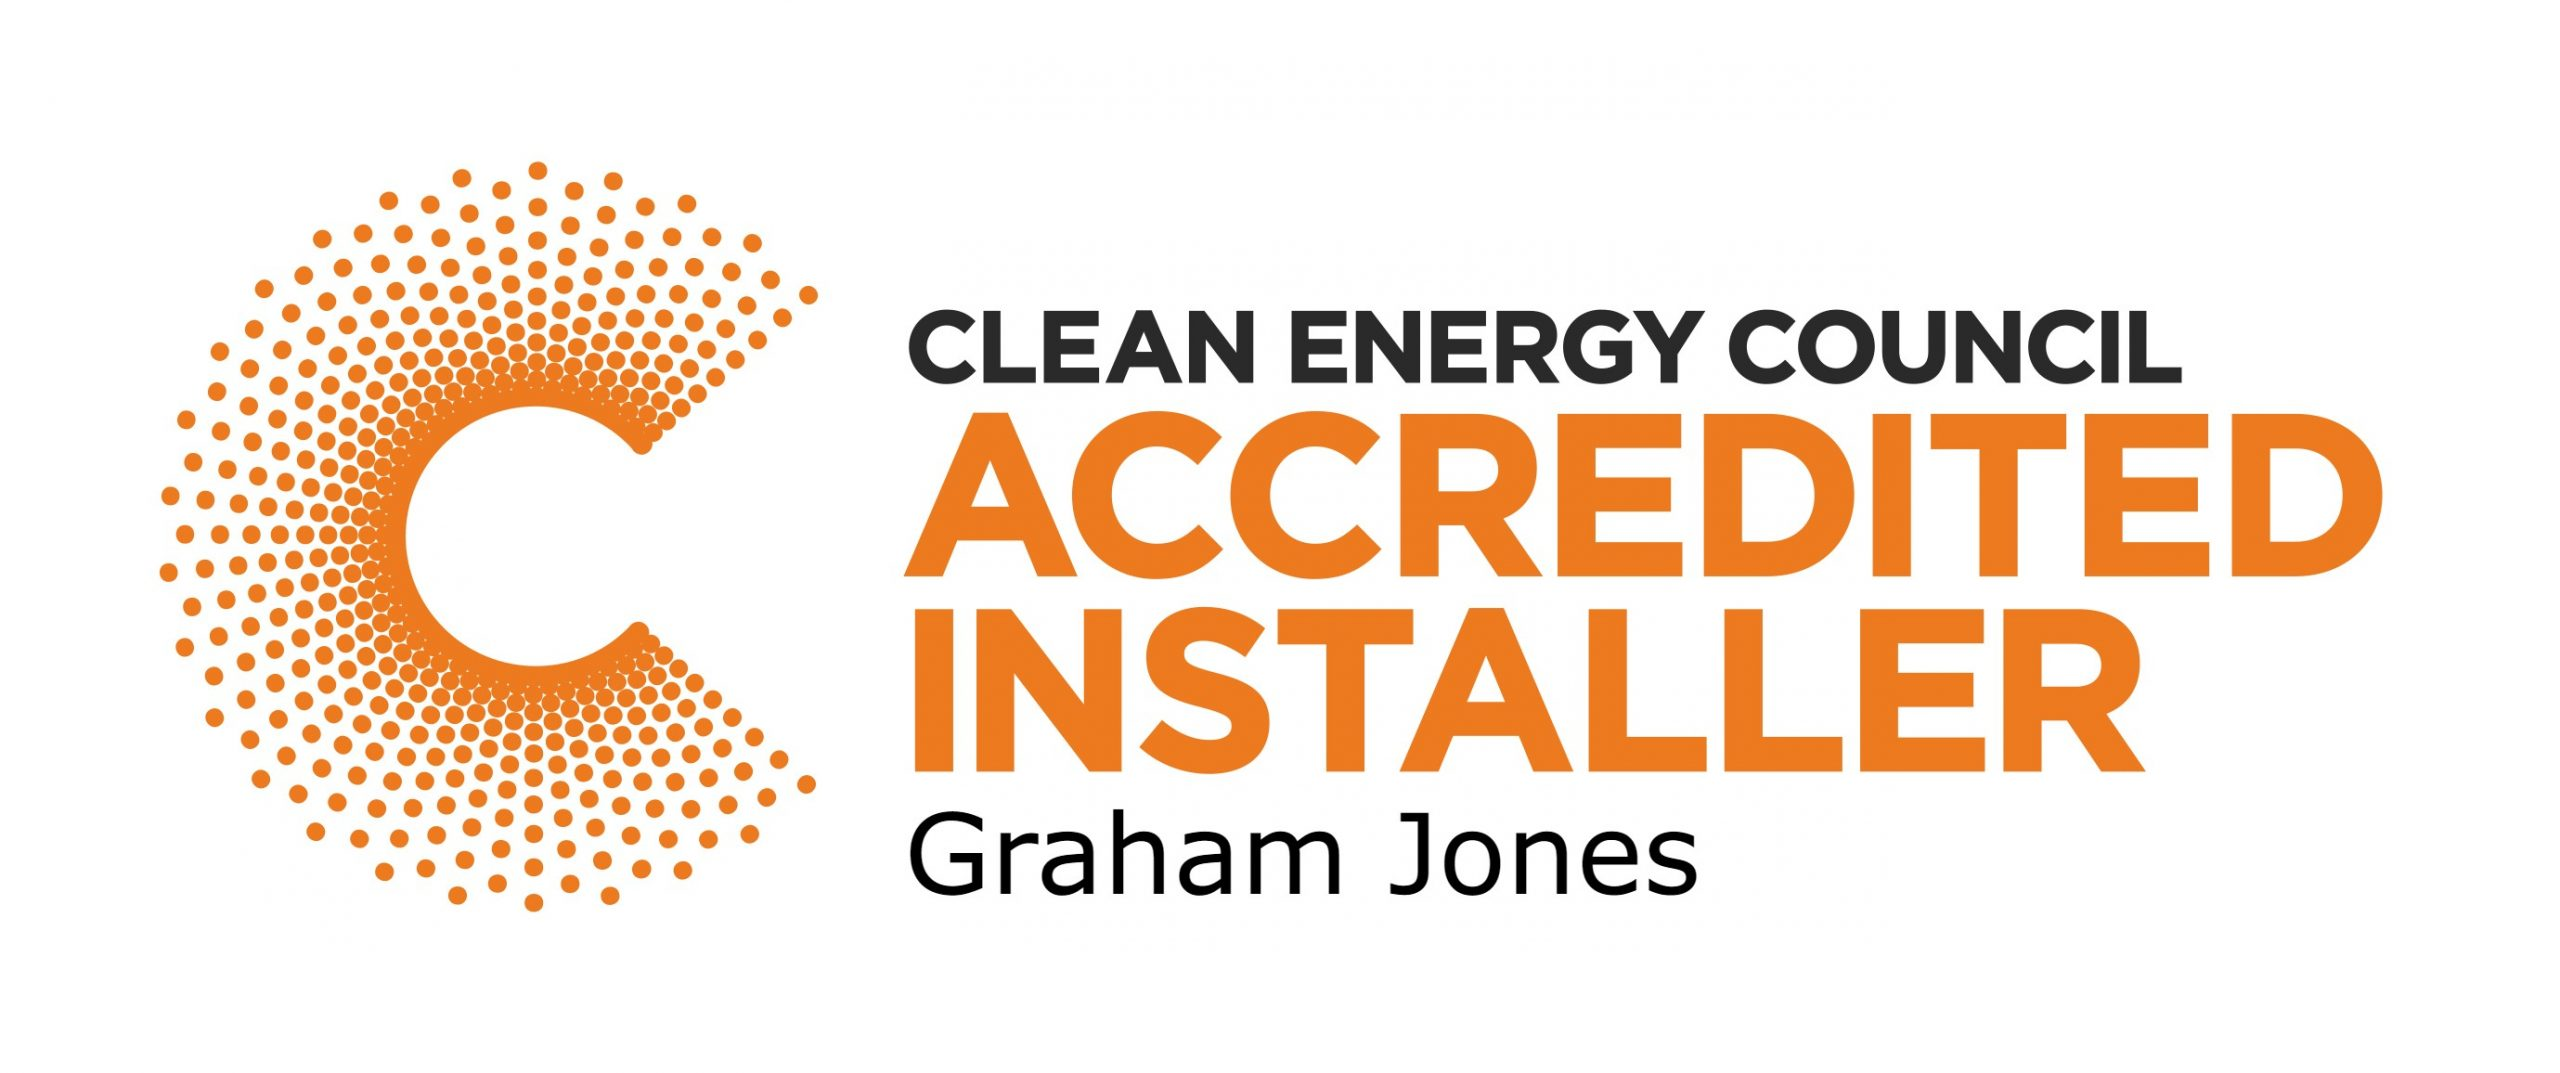 accreditation image for the clean energy council